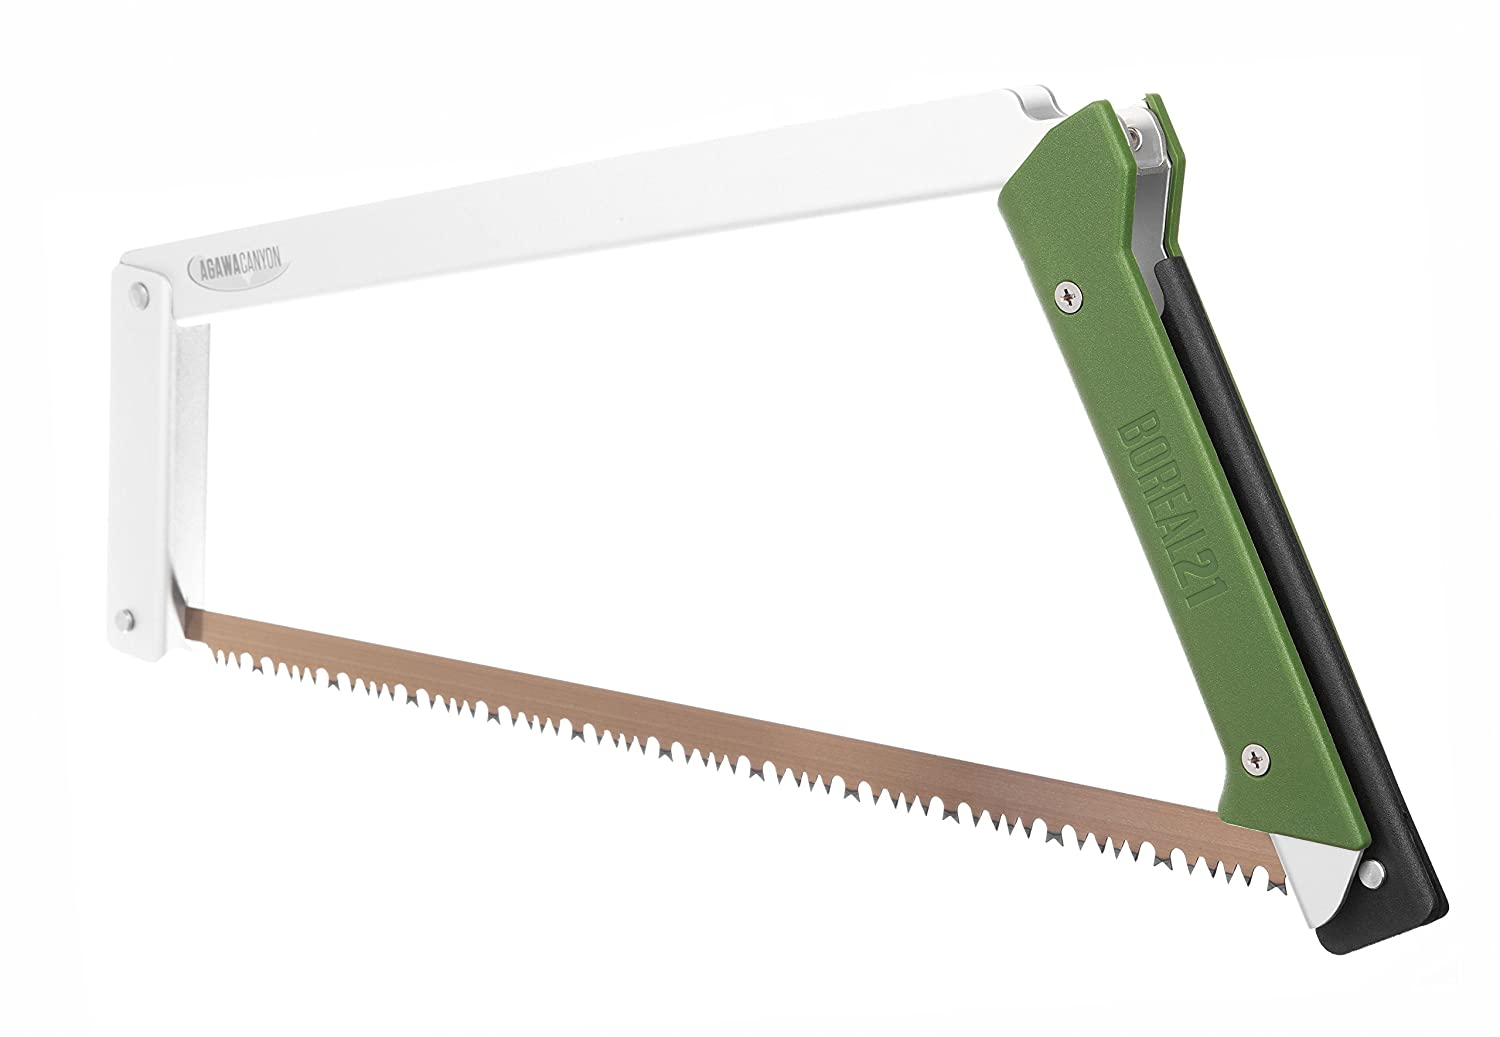 Agawa Canyon – BOREAL21 Folding Bow Saw – Clear Frame, Green Handle, All-Purpose Blade